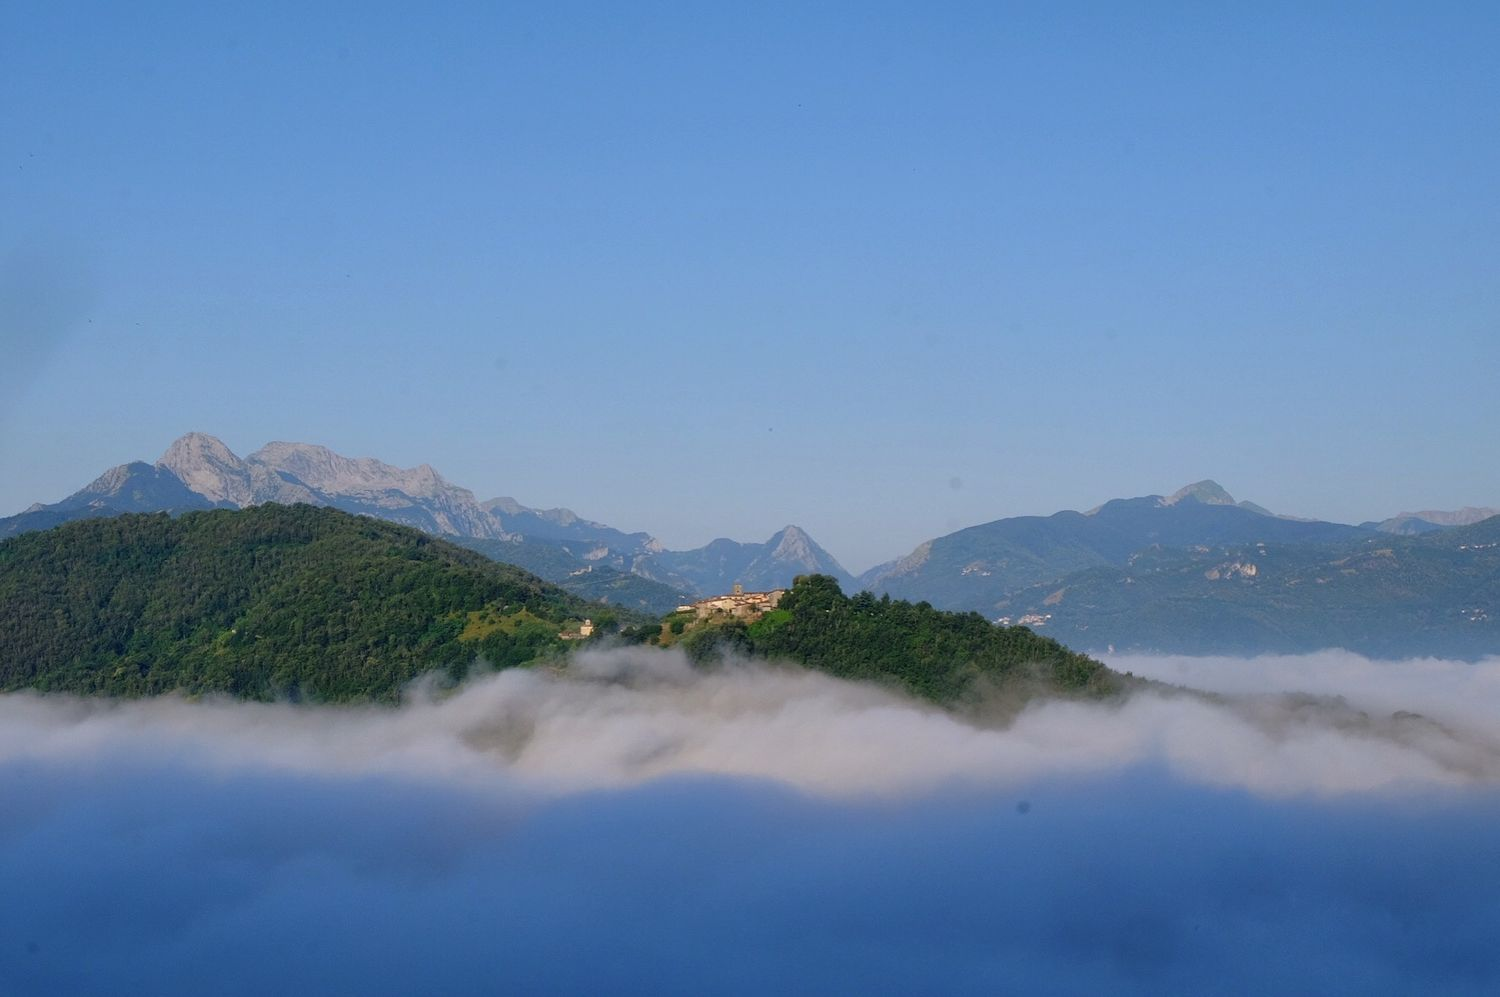 clouds hang low in the Serchio valley